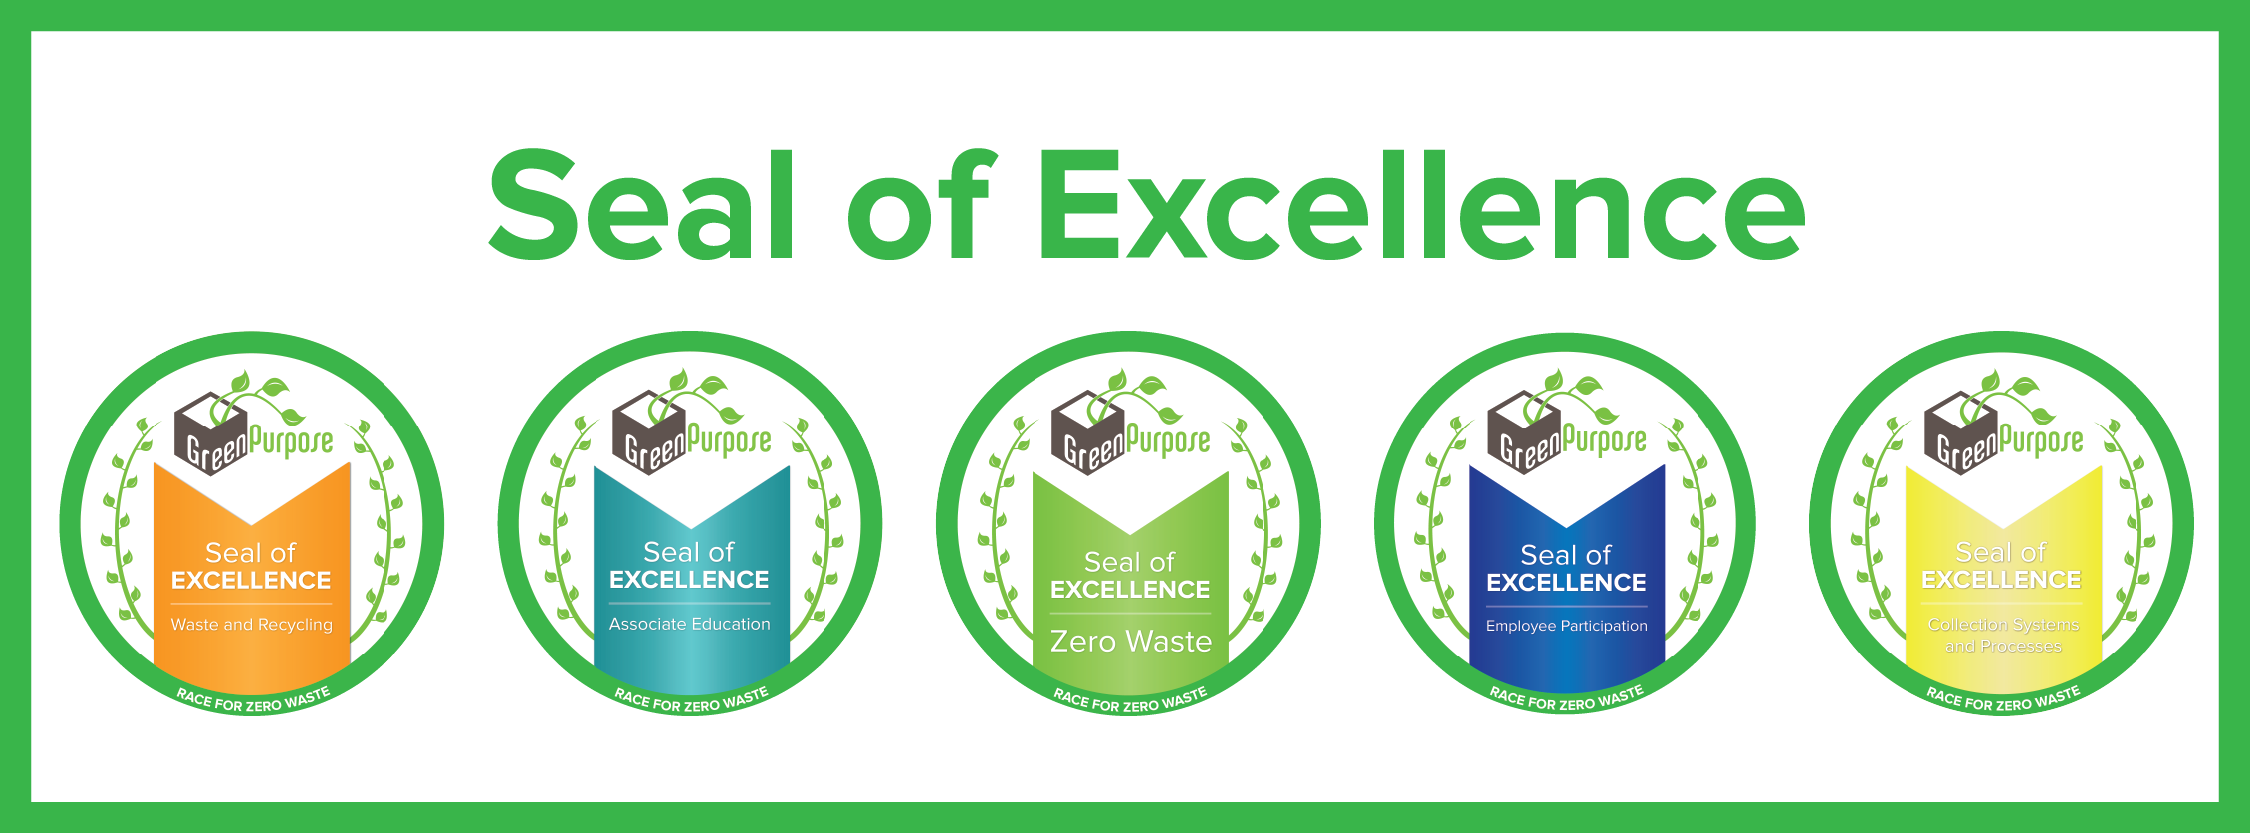 Seal of Excellence Header.png